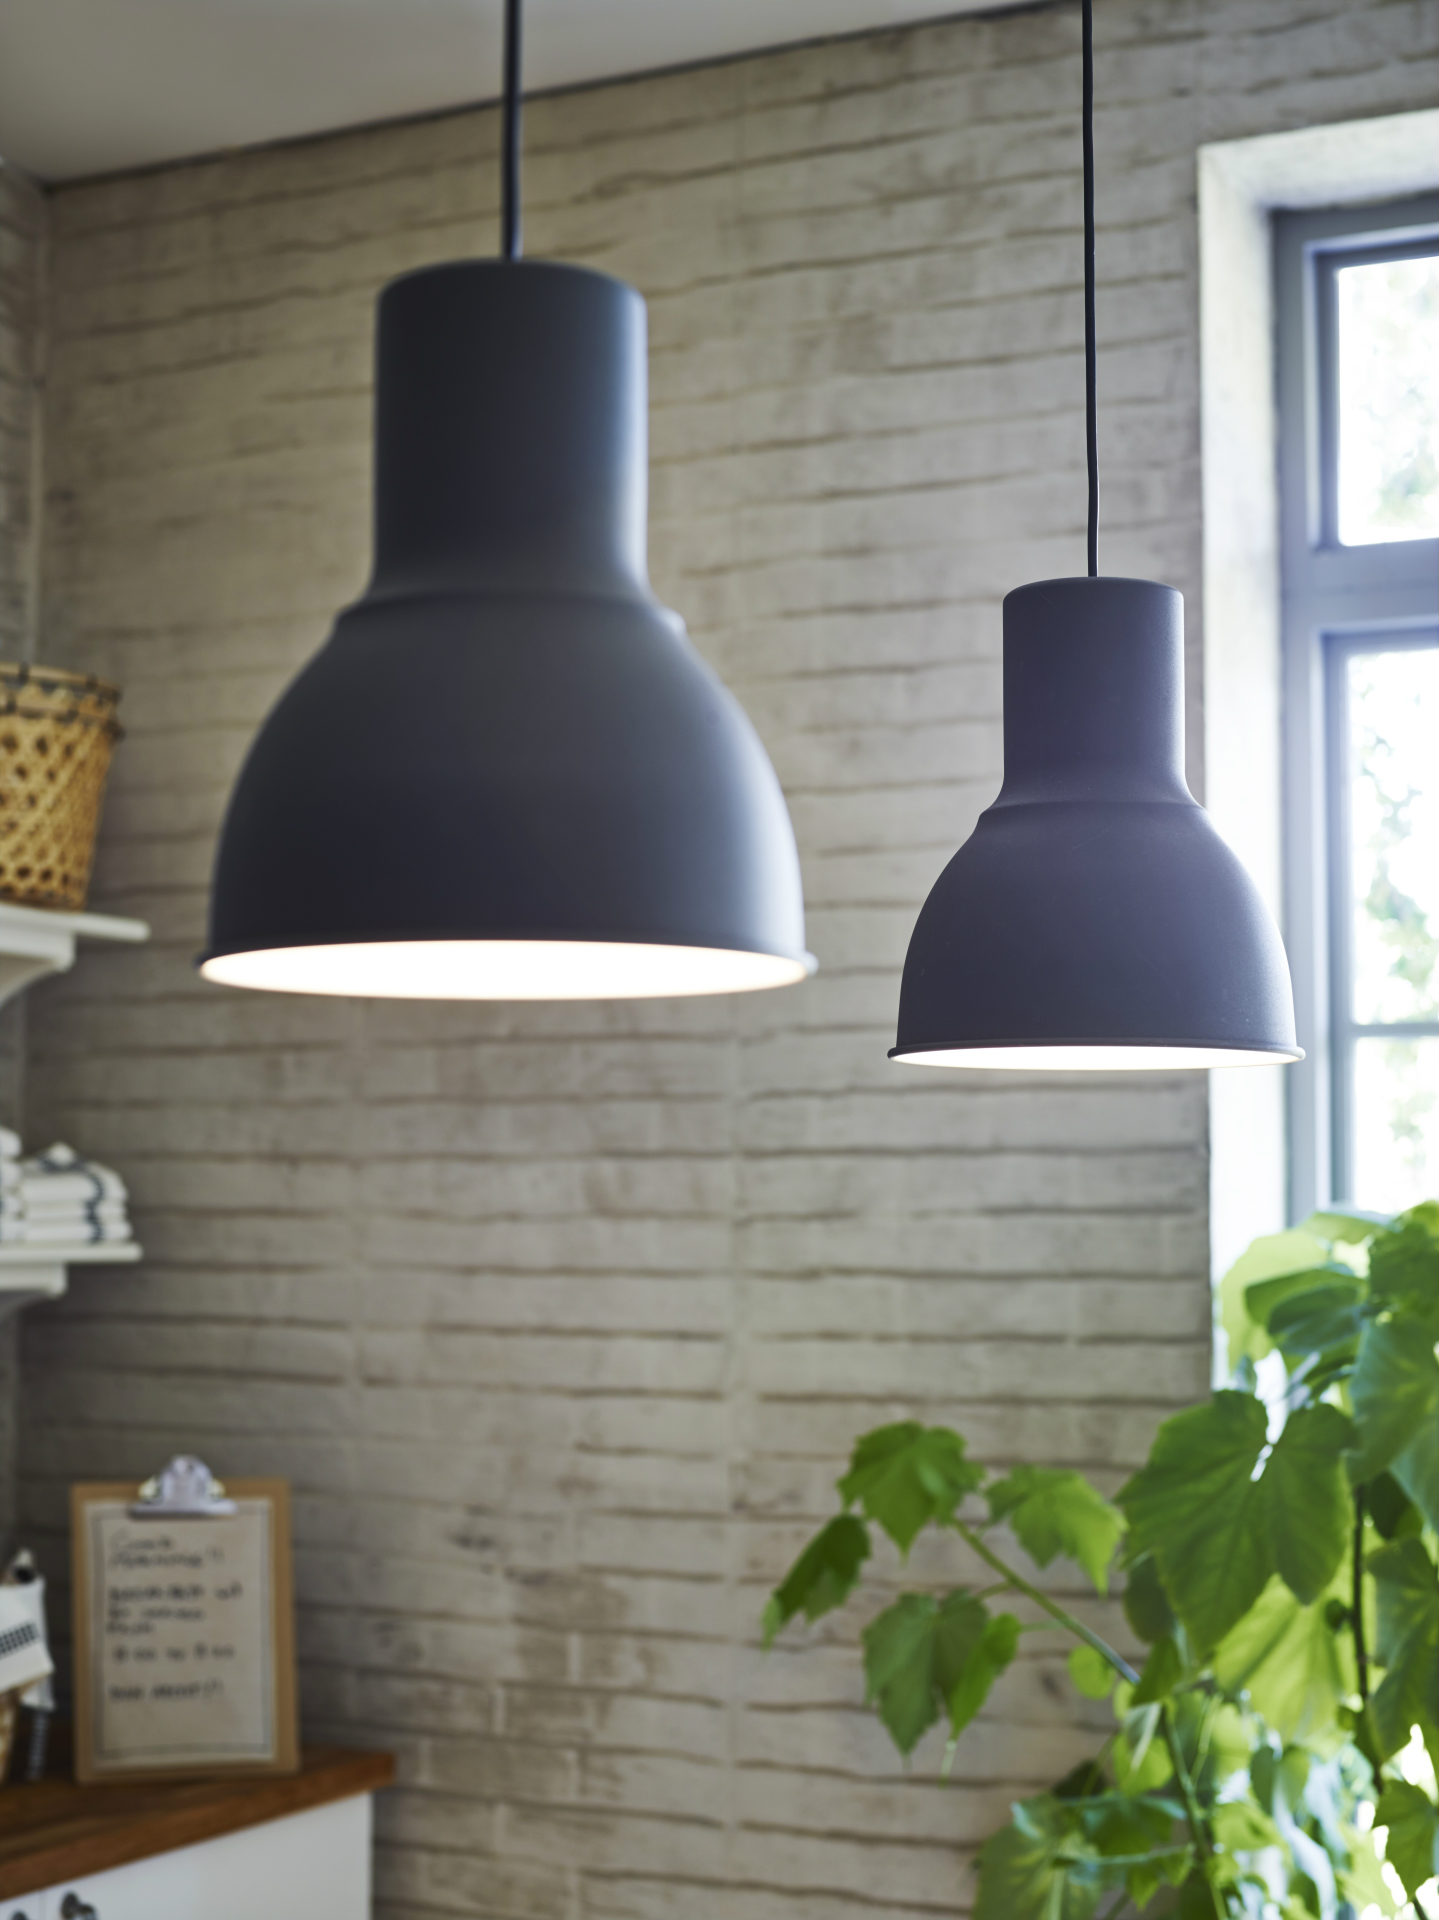 Lighting Lampen Everything You Need To Know About Finding An Ikea Lighting